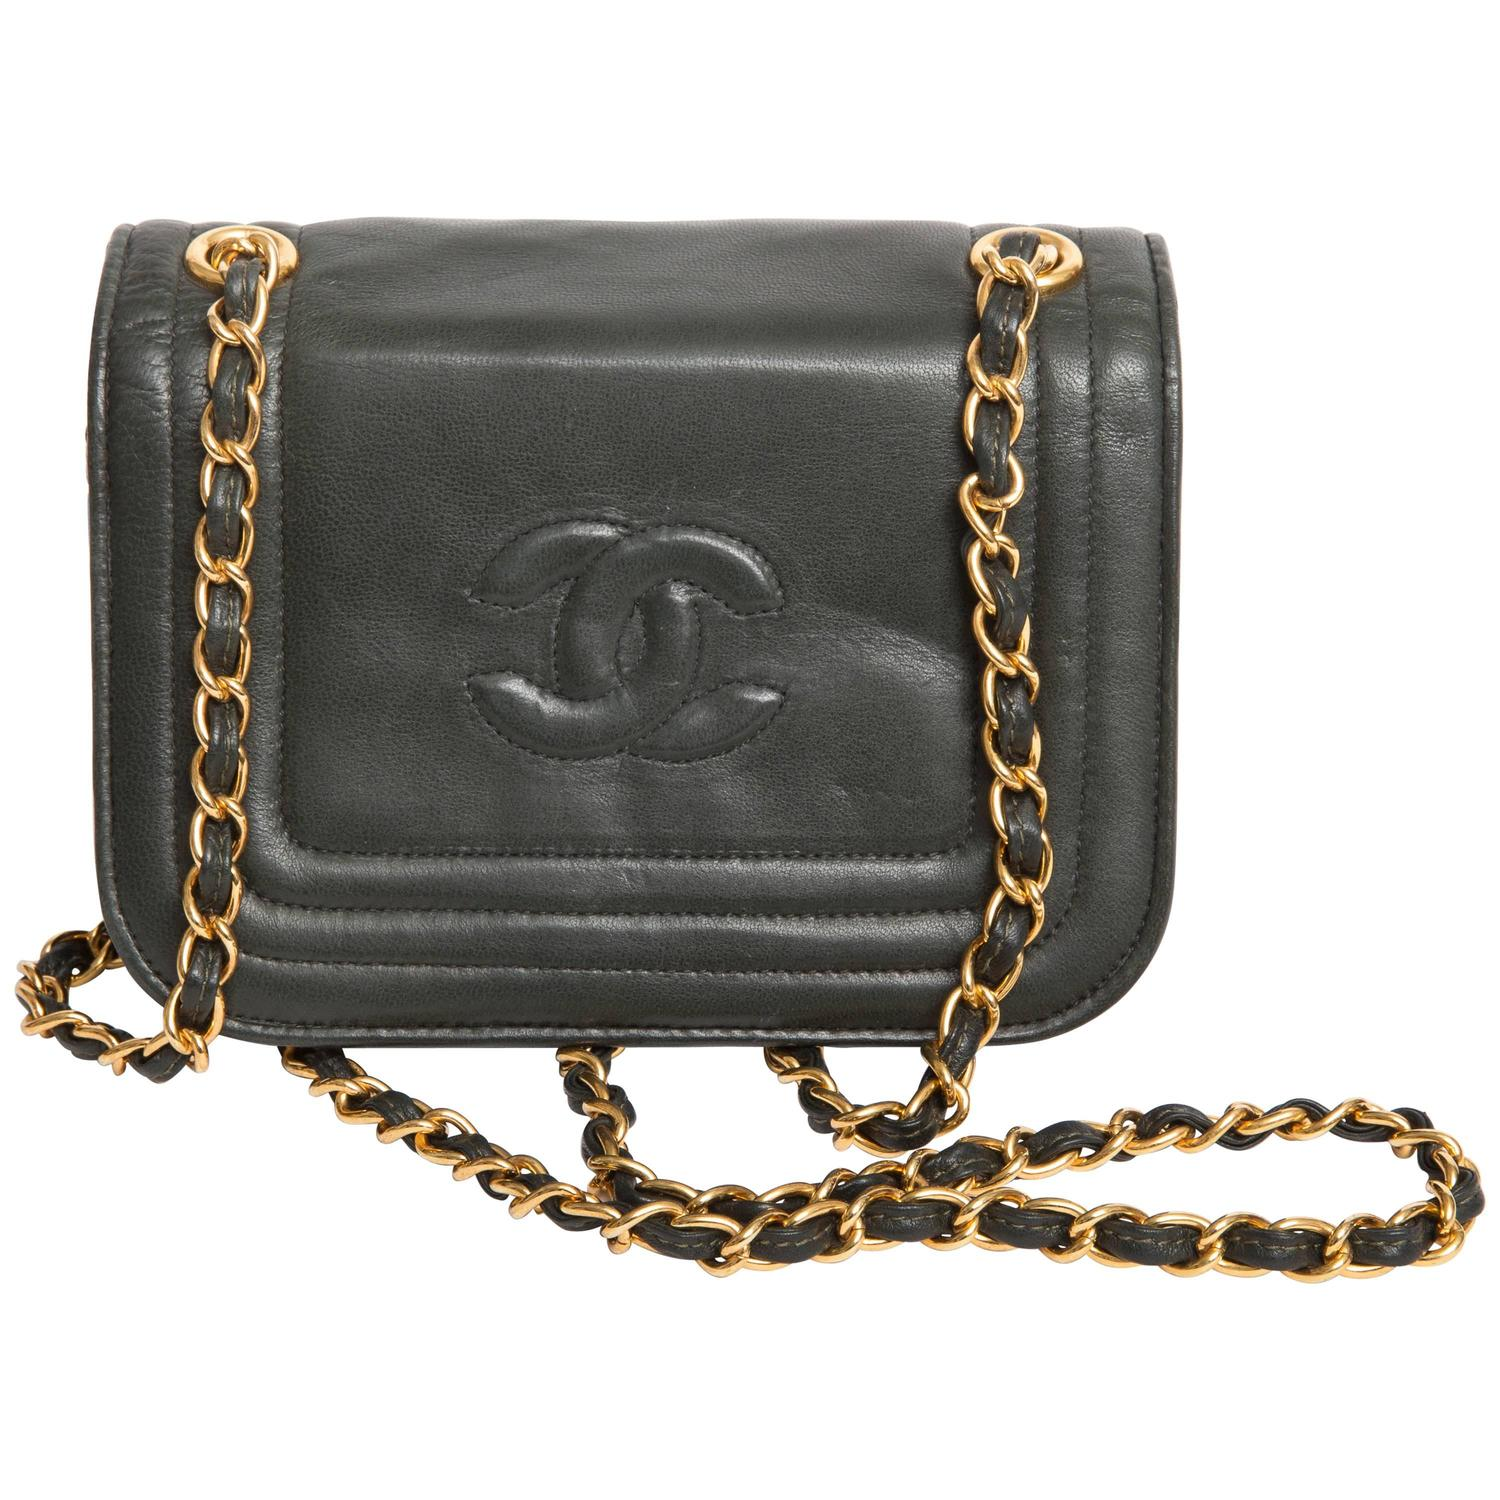 f379e8c1fb81 Vintage Chanel Bags For Sale | Stanford Center for Opportunity ...